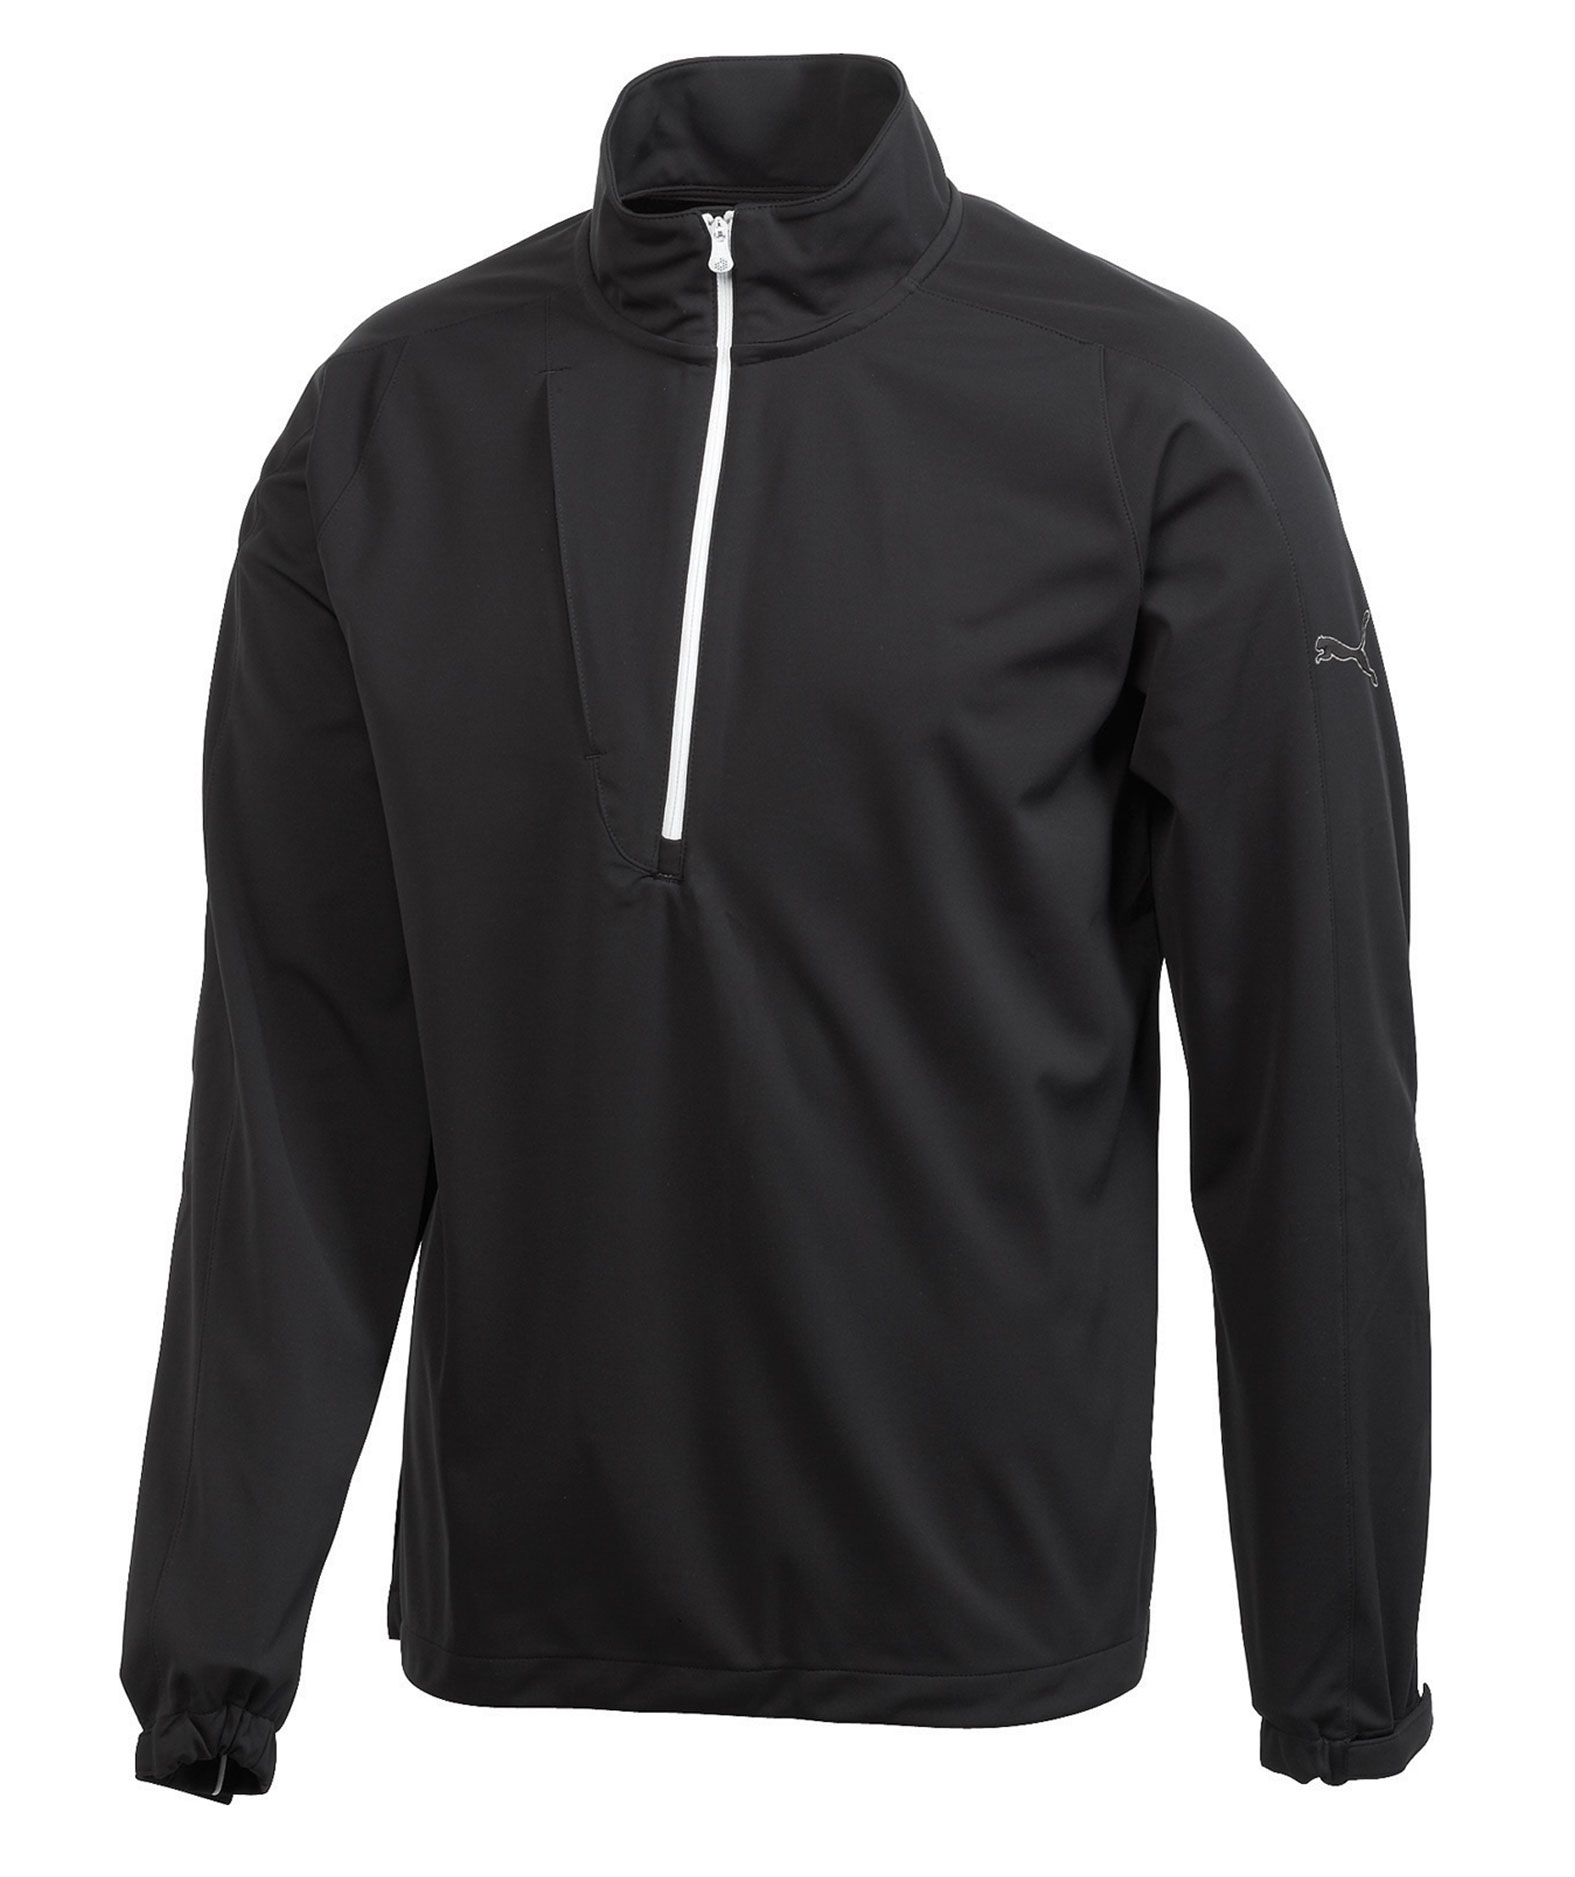 Puma Golf Longsleeve Knit Wind Jacket